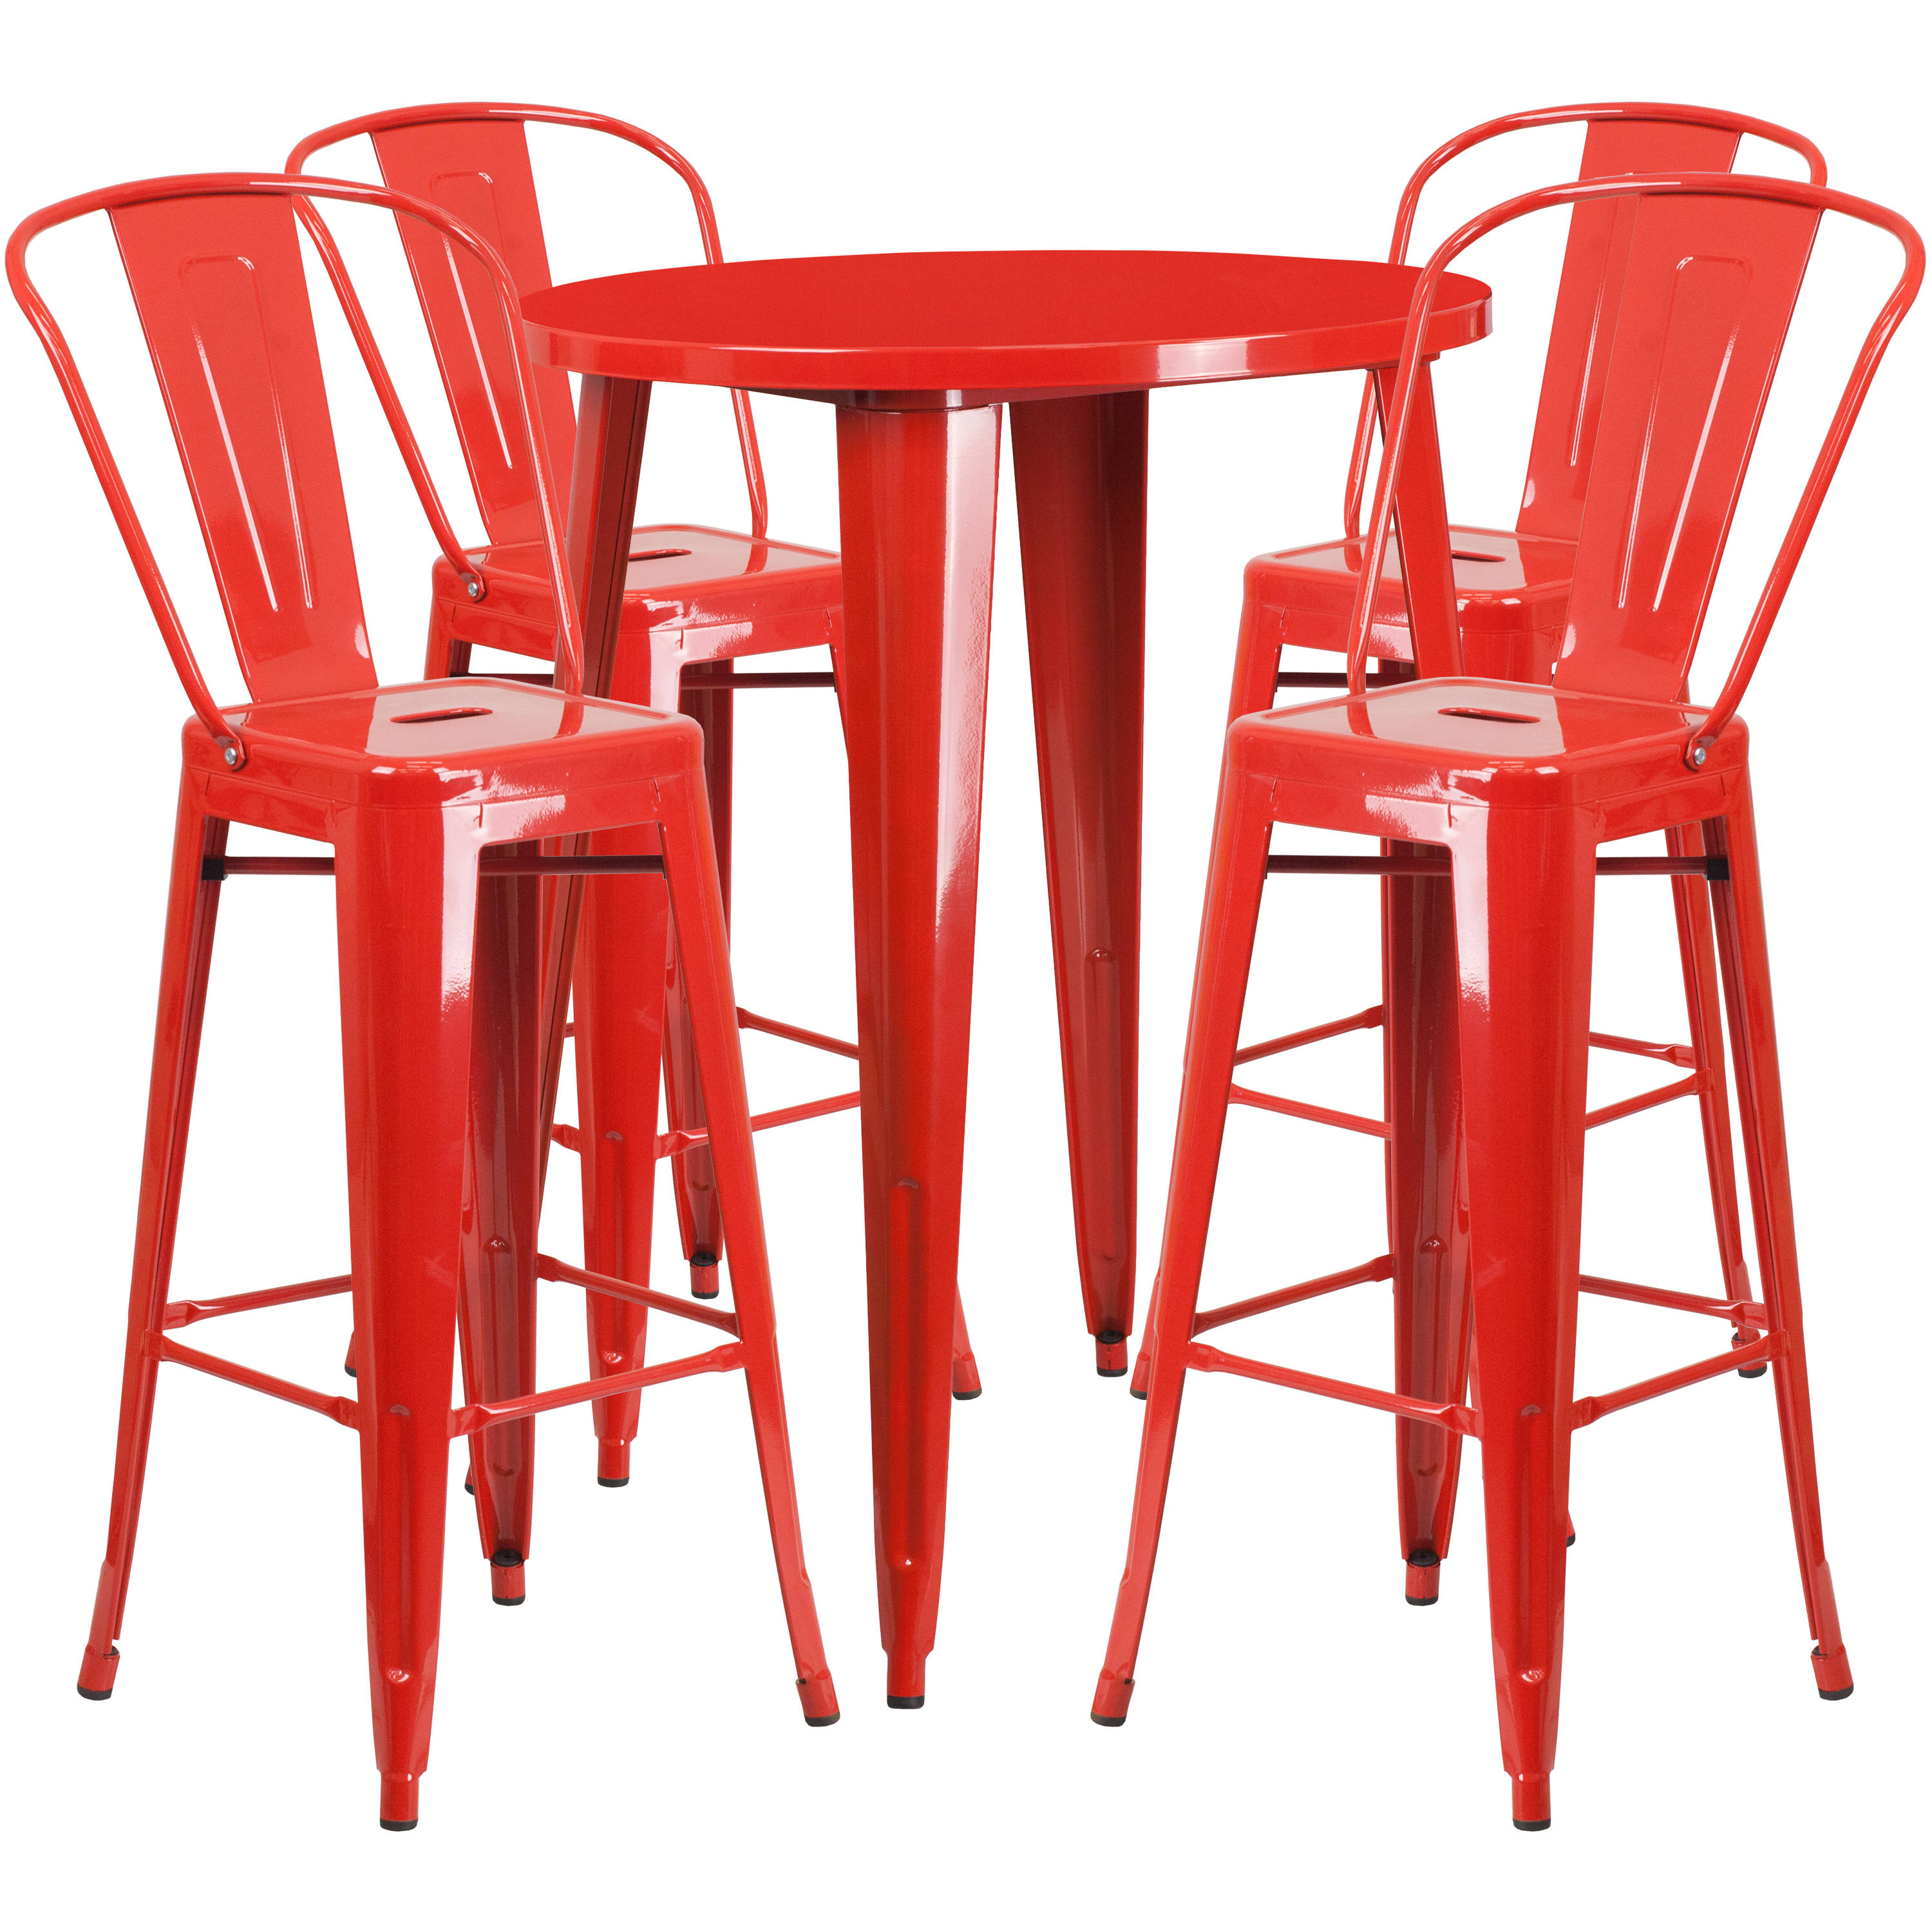 Strange Flash Furniture Red Metal Indoor Outdoor Bar Table Set With 4 Cafe Stools Cjindustries Chair Design For Home Cjindustriesco